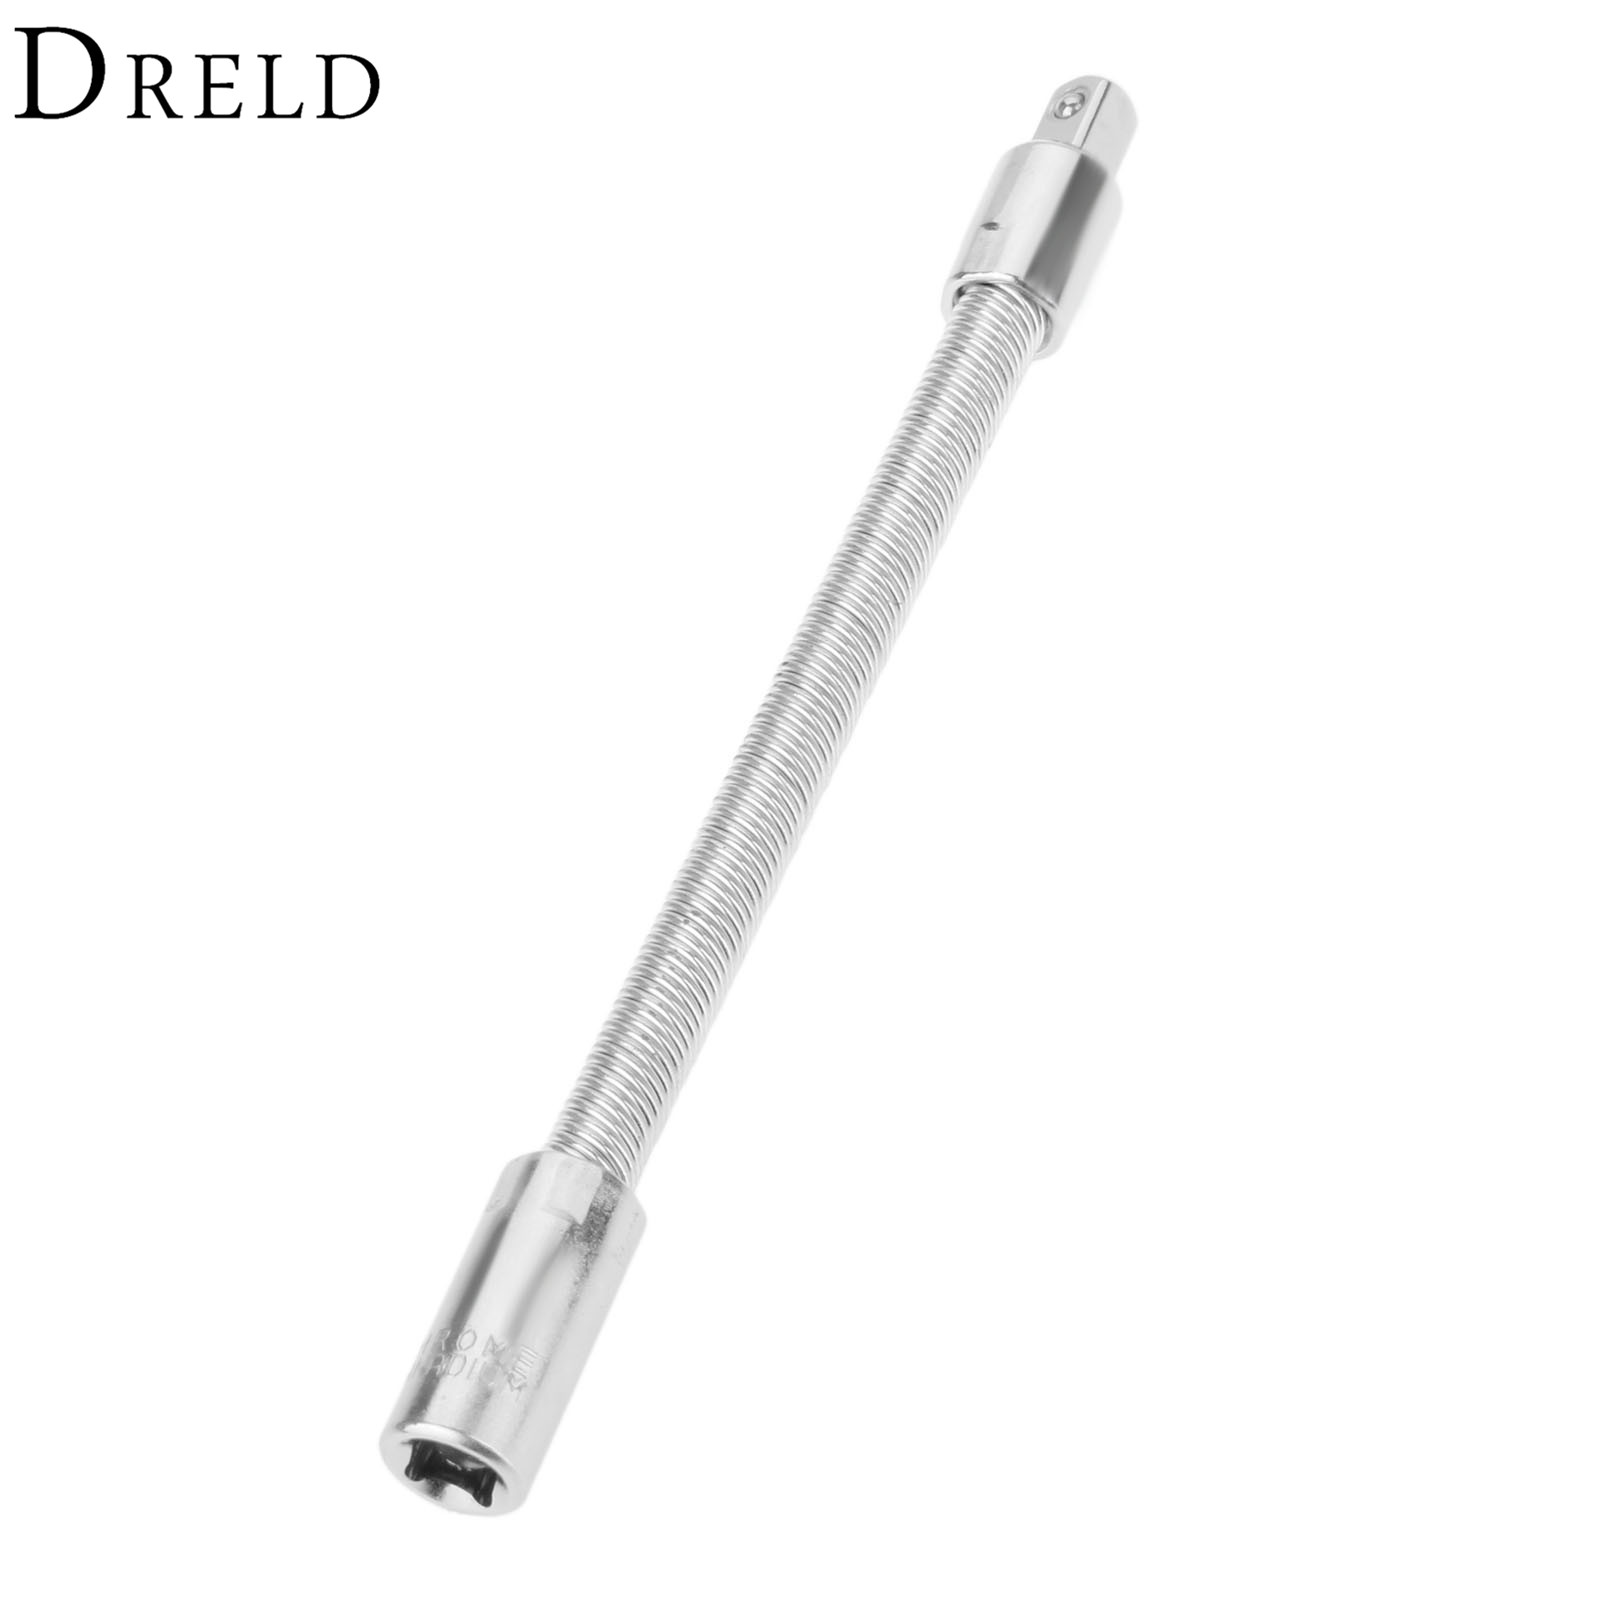 DRELD 1Pc 1/4 Inch 6.3MM Drive Socket Flexible Extension Bar 145mm Long Spring Flexi Socket Ratchet Mechanic Steel Shaft Tool